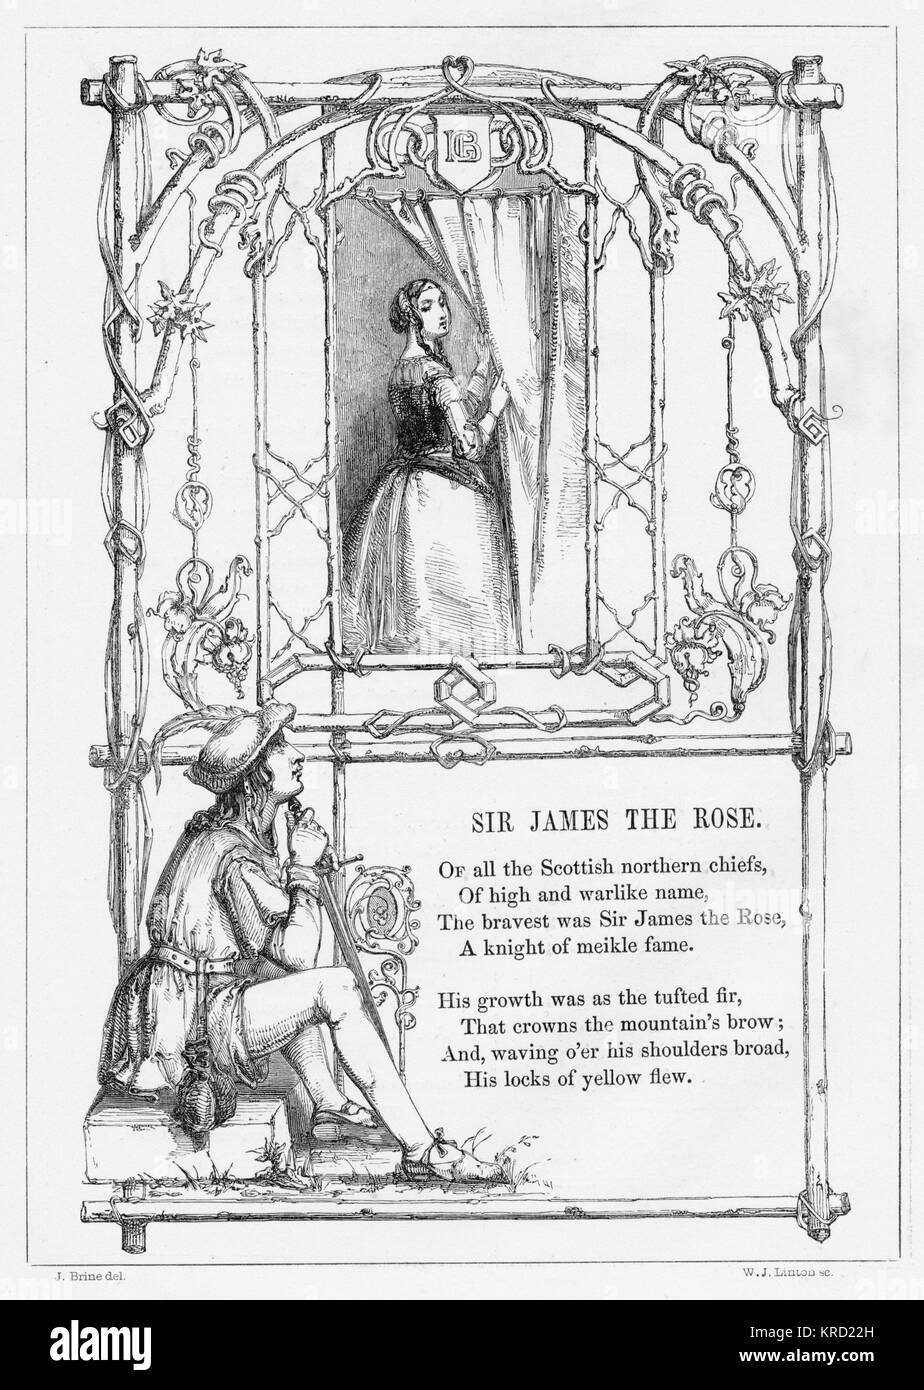 SIR JAMES THE ROSE.  British ballad, credited to Michael Bruce (1746-1767) telling the account of Sir James the - Stock Image